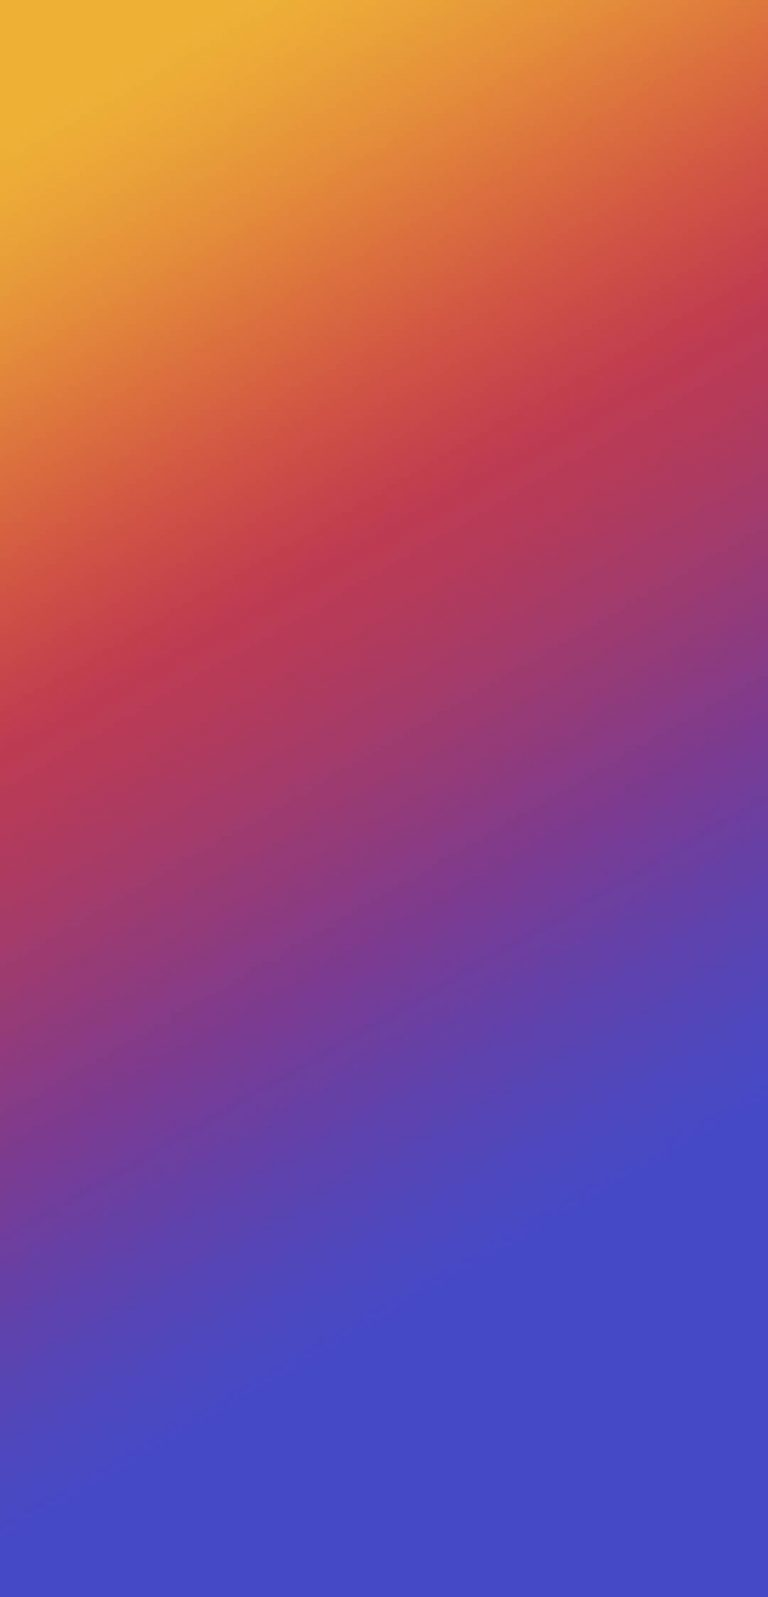 Lenovo K5 Note 2018 Stock Wallpaper 05 1080x2246 768x1597